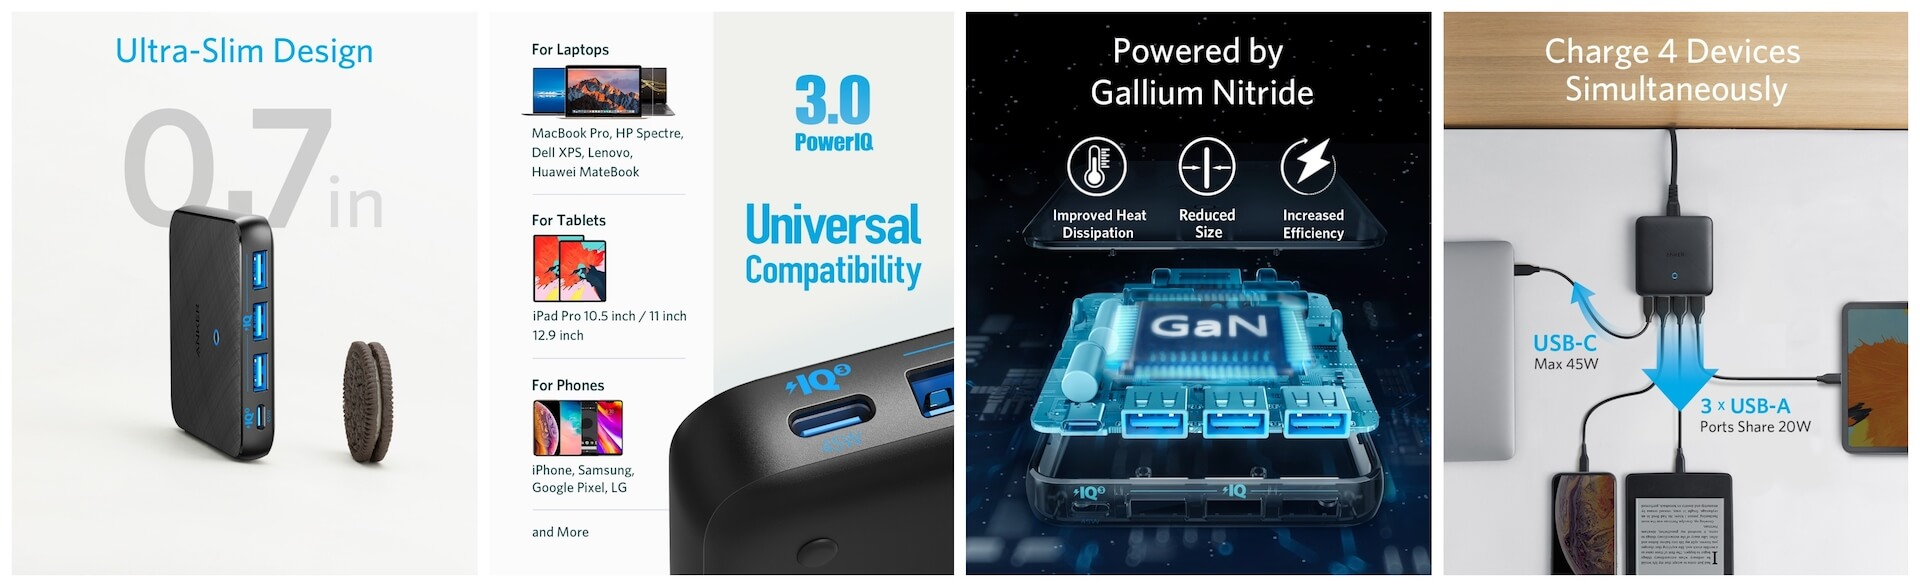 Ankerの最新急速スマホ充電器が超薄くて高性能!「Anker PowerPort Atom lll Slim(Four Ports)」発売 tech200117_anker_charge_2